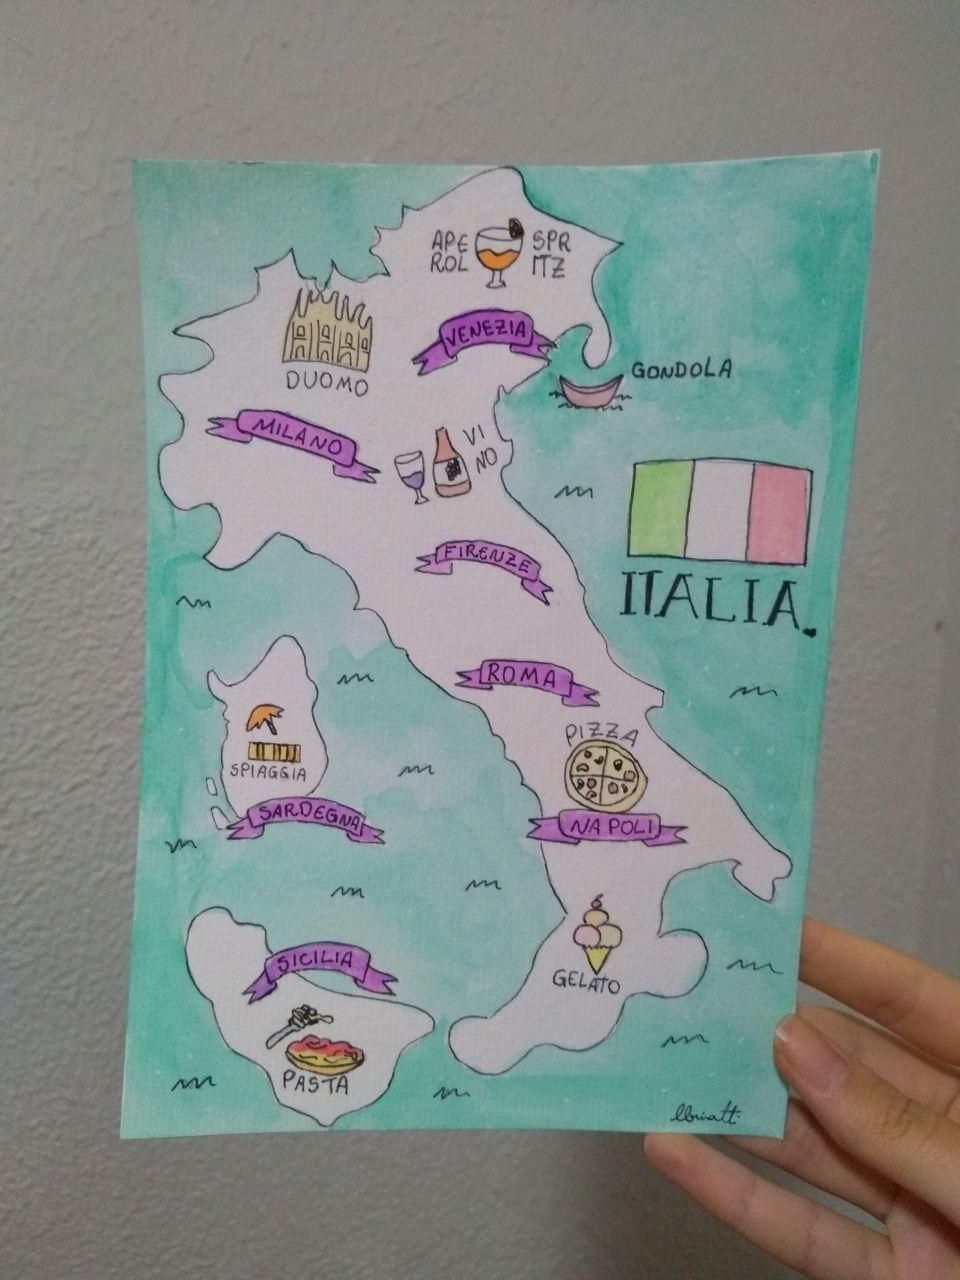 Italy Map - image 1 - student project